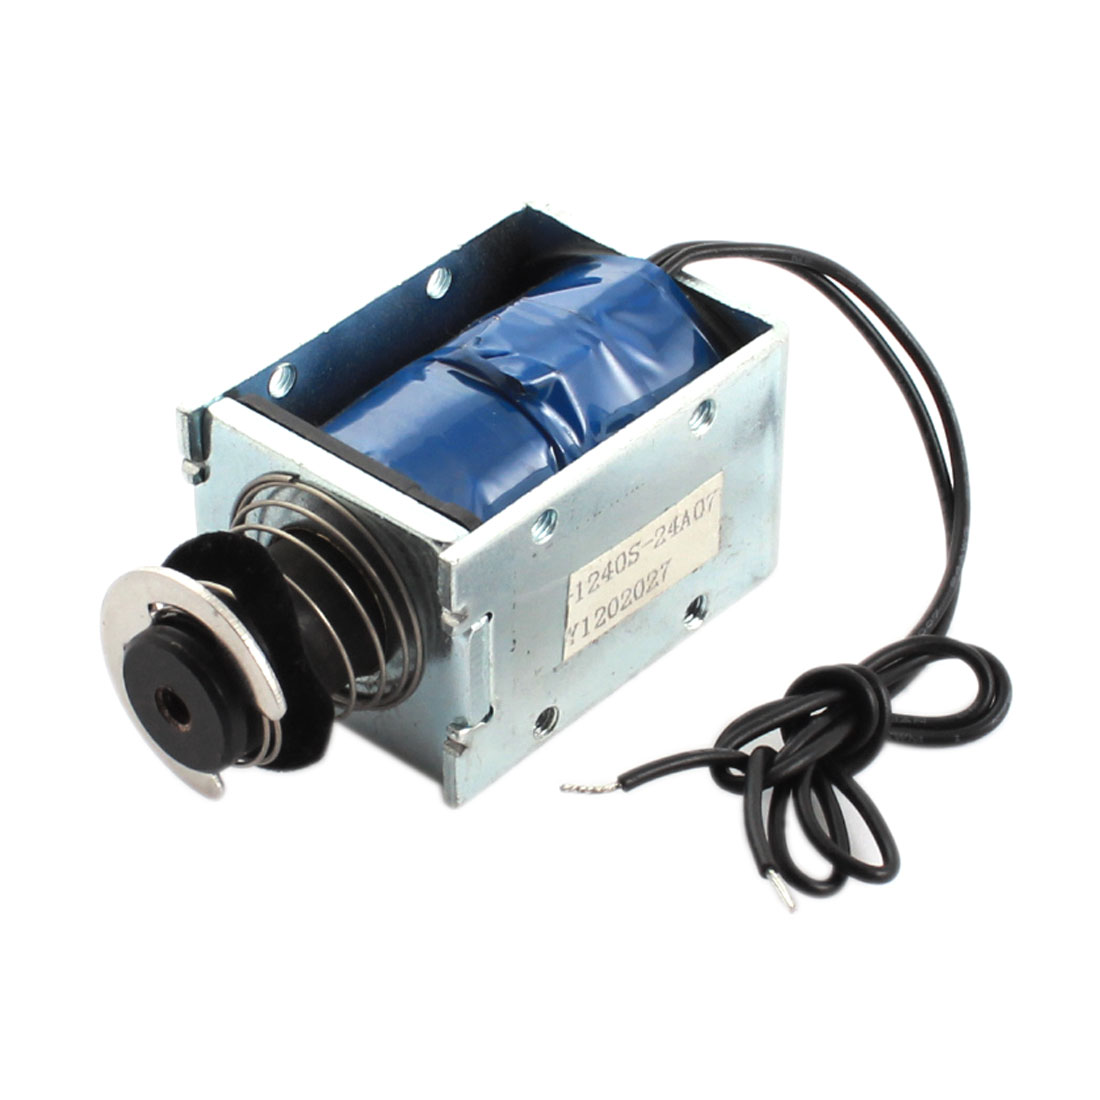 DC 24V 3.42A 82.28W 10mm 1200g Open Frame Spring Plunger Linear Motion Push Pull Type Solenoid Electromagnet Actuator